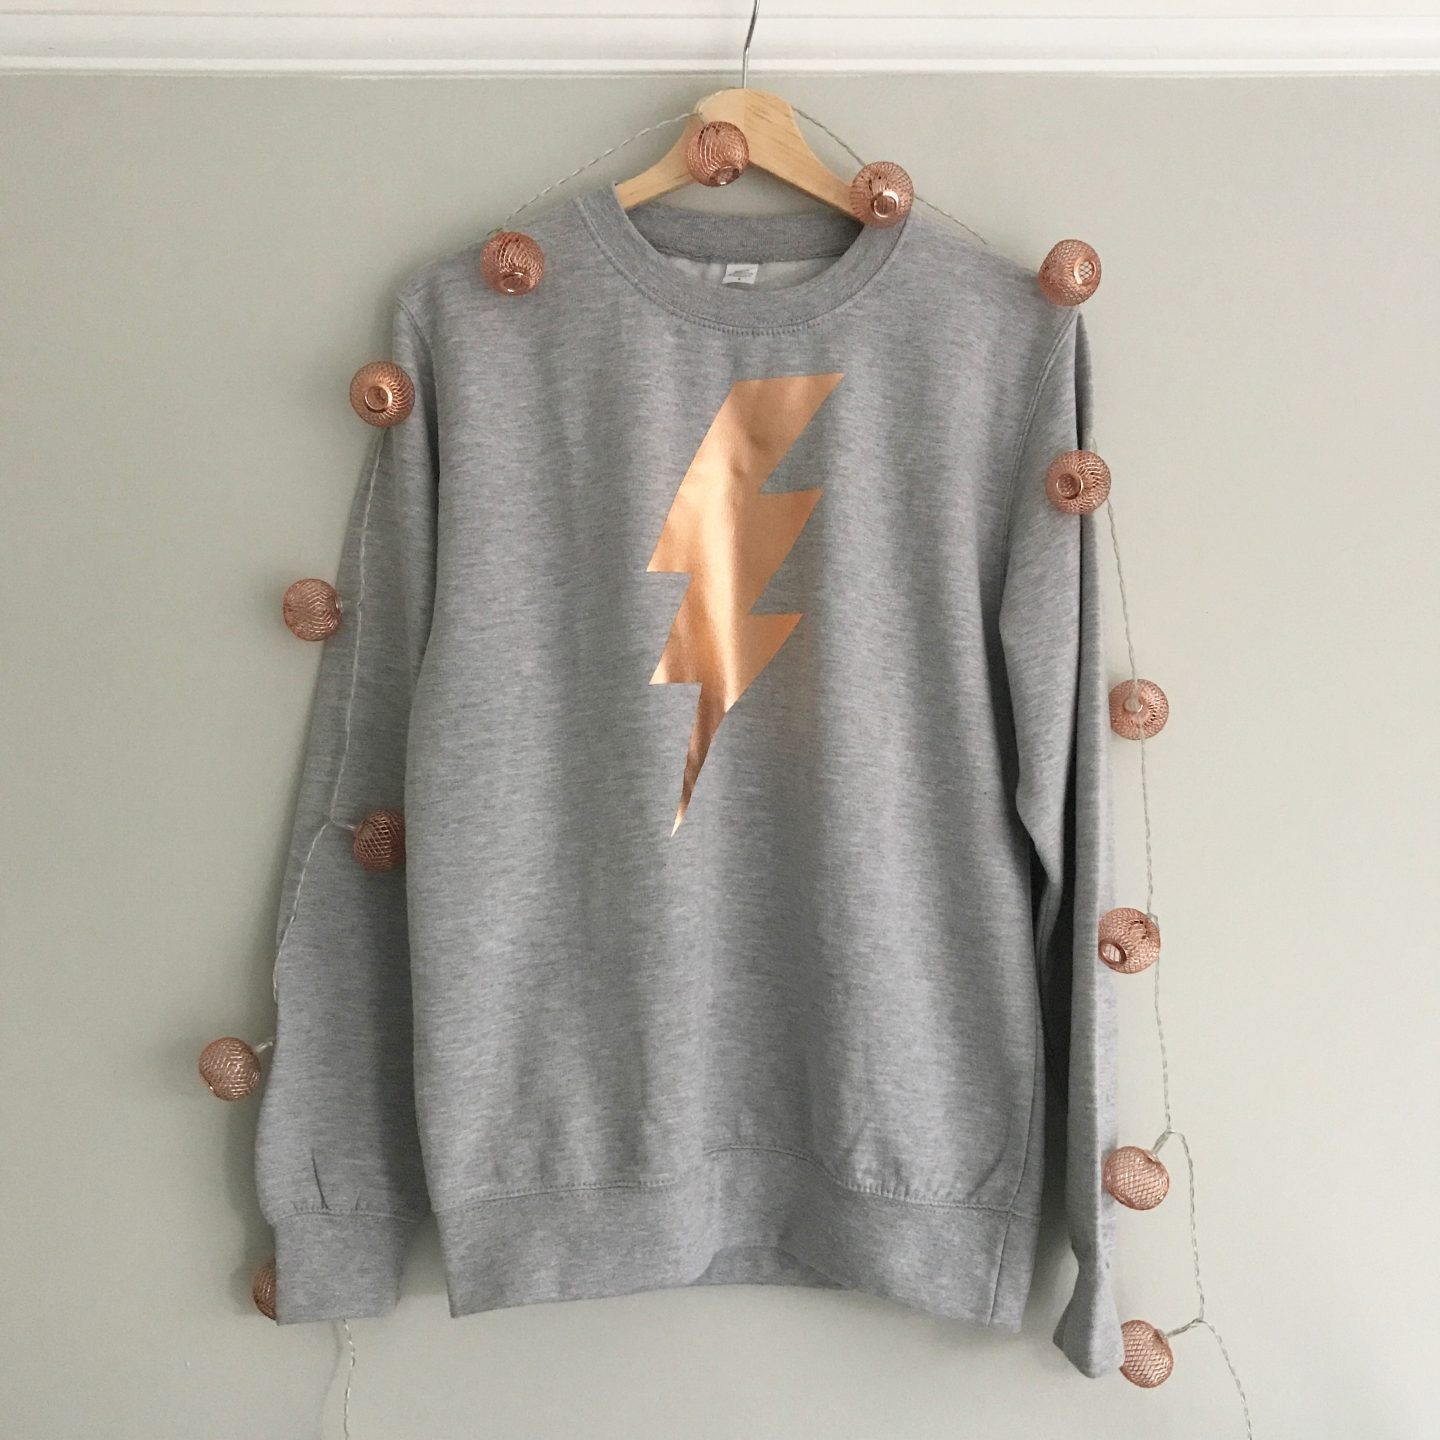 Pearl and Early Marl Grey Sweatshirt